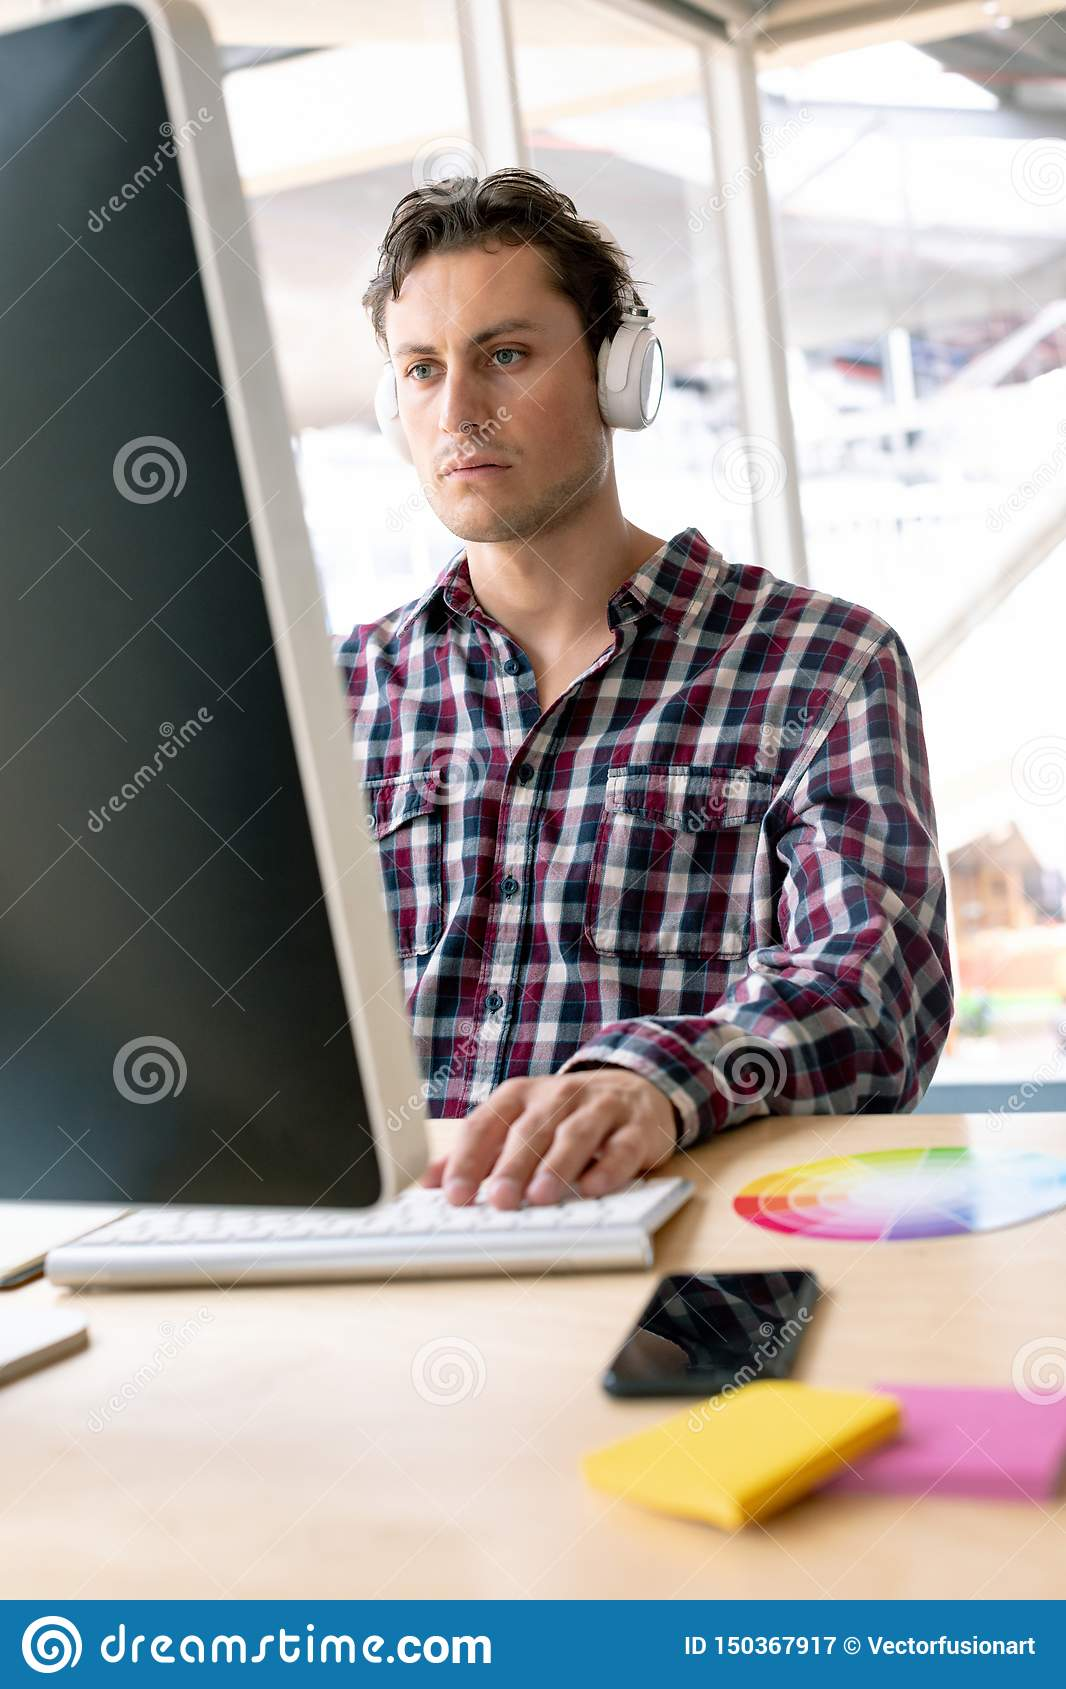 Male graphic designer listening music on headphone while working on computer at desk